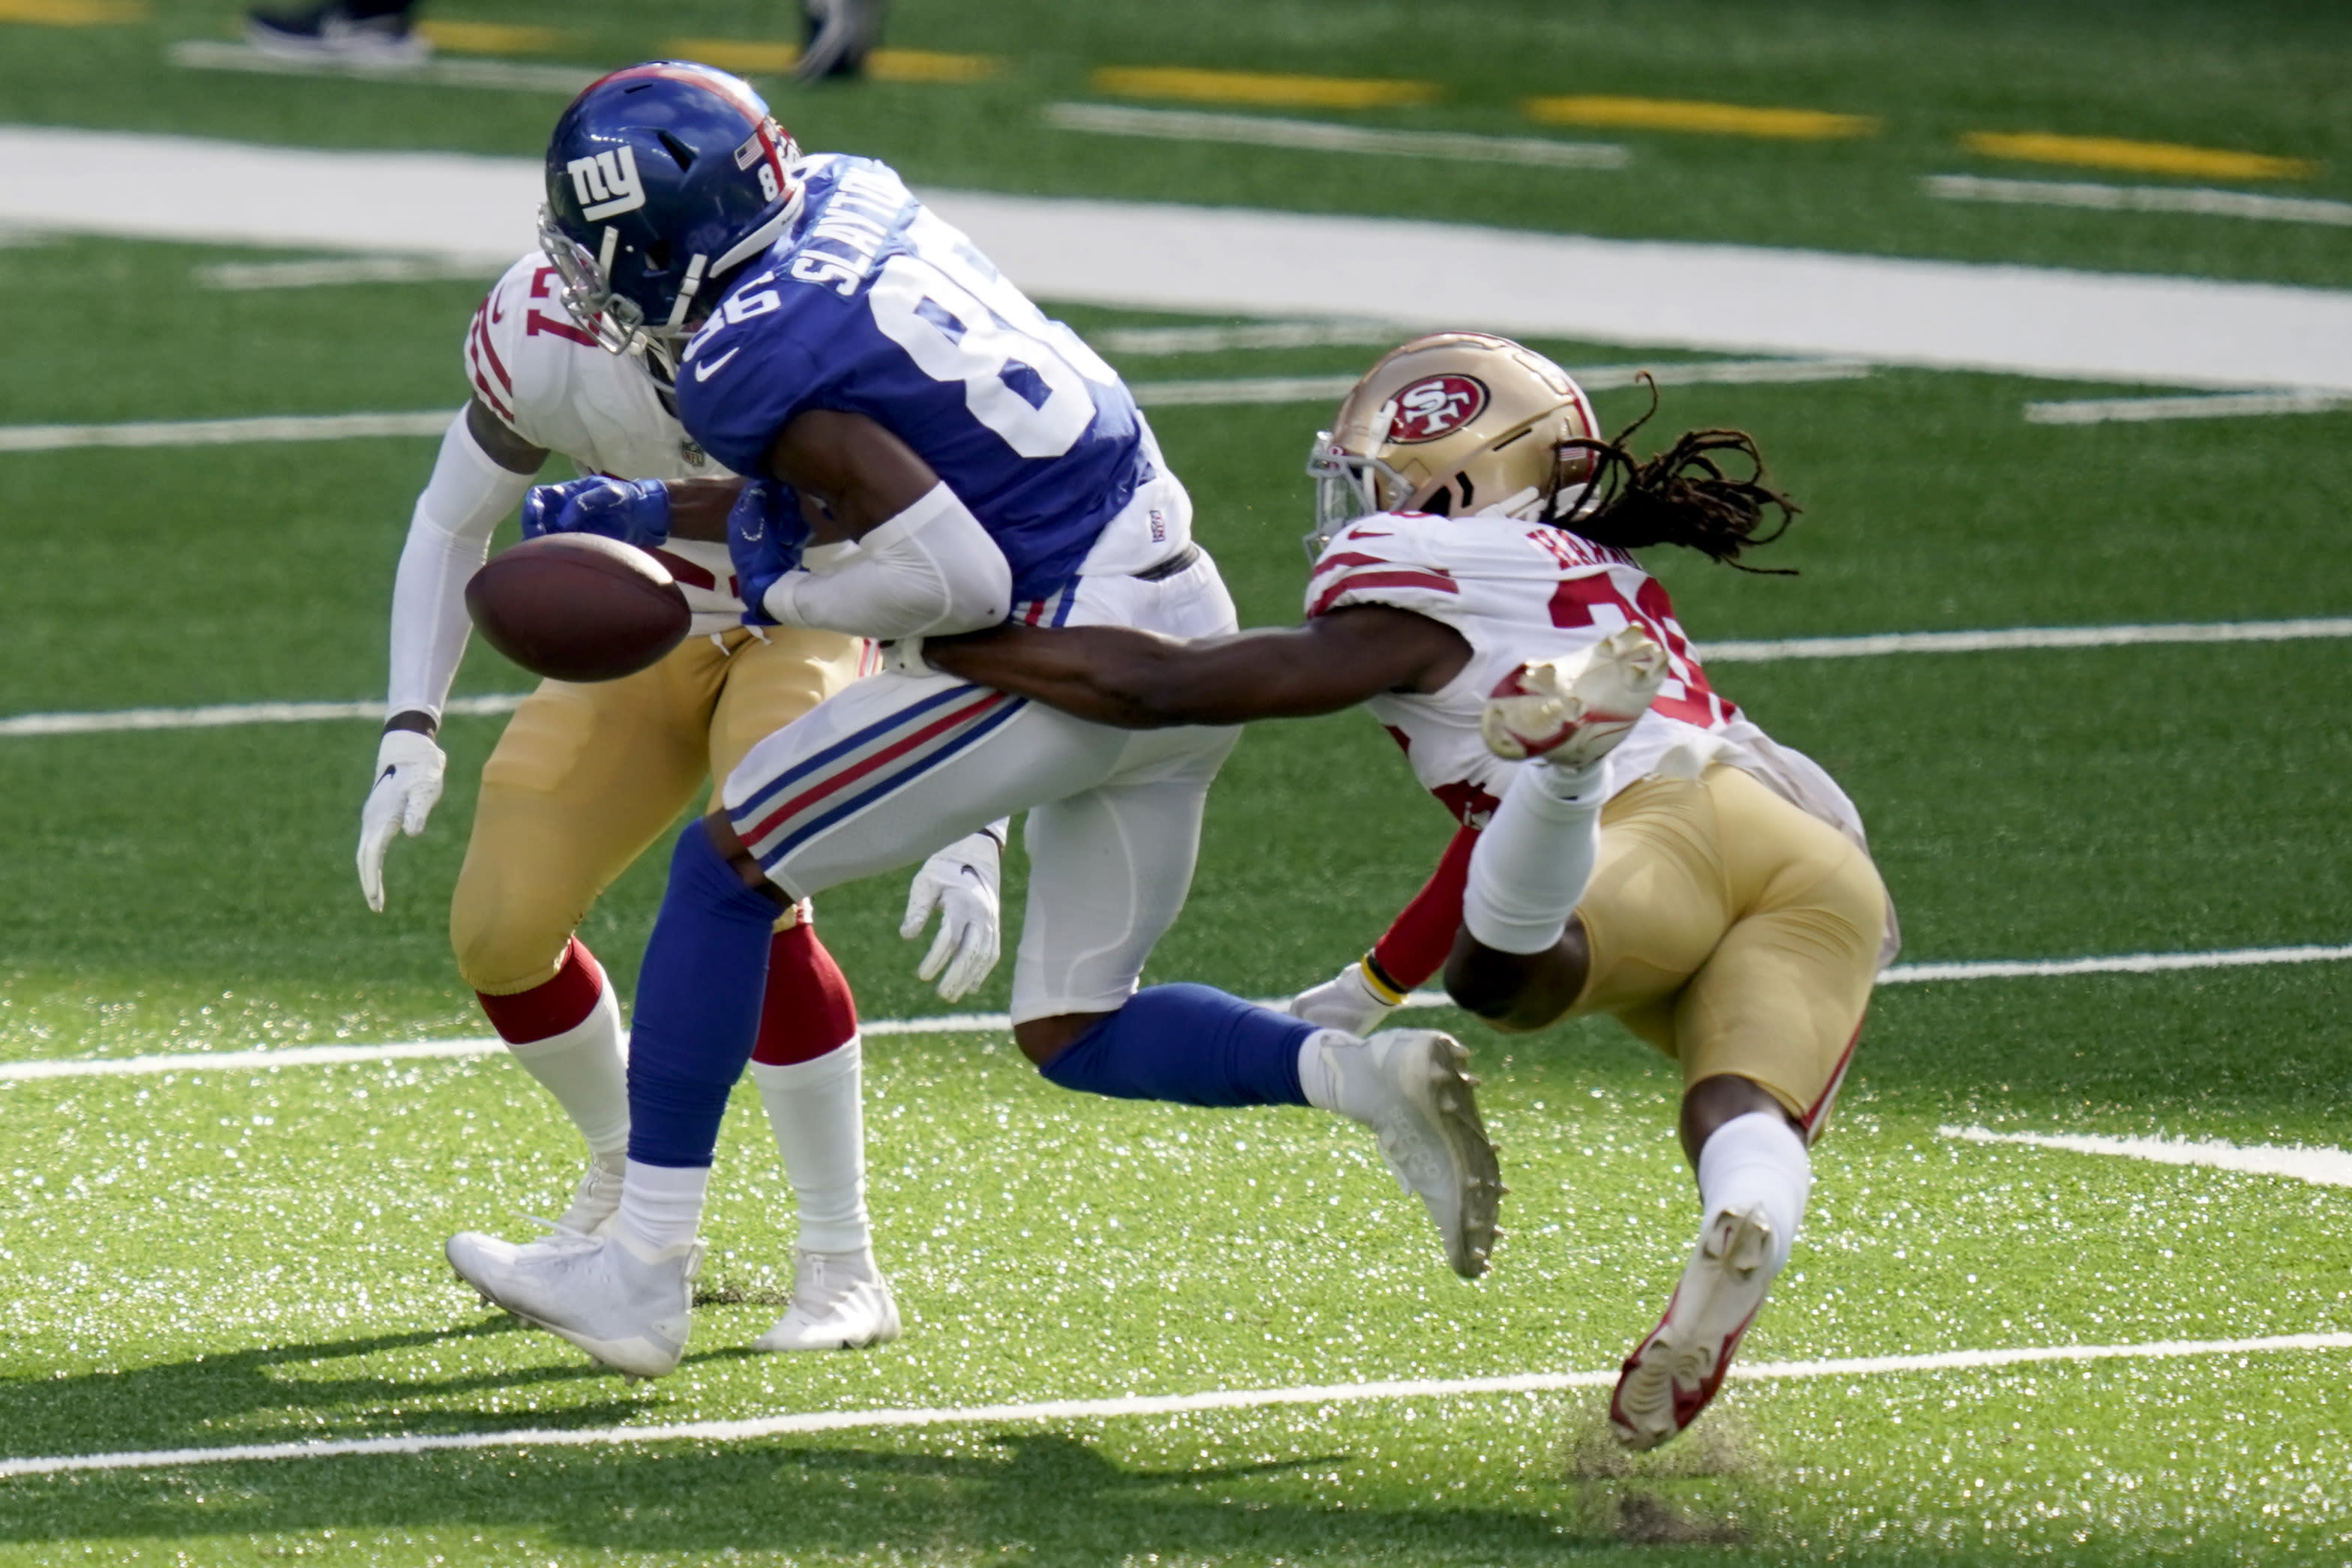 San Francisco 49ers' Marcell Harris, right, punches the ball away from New York Giants' Darius Slayton during the second half of an NFL football game, Sunday, Sept. 27, 2020, in East Rutherford, N.J. (AP Photo/Corey Sipkin)